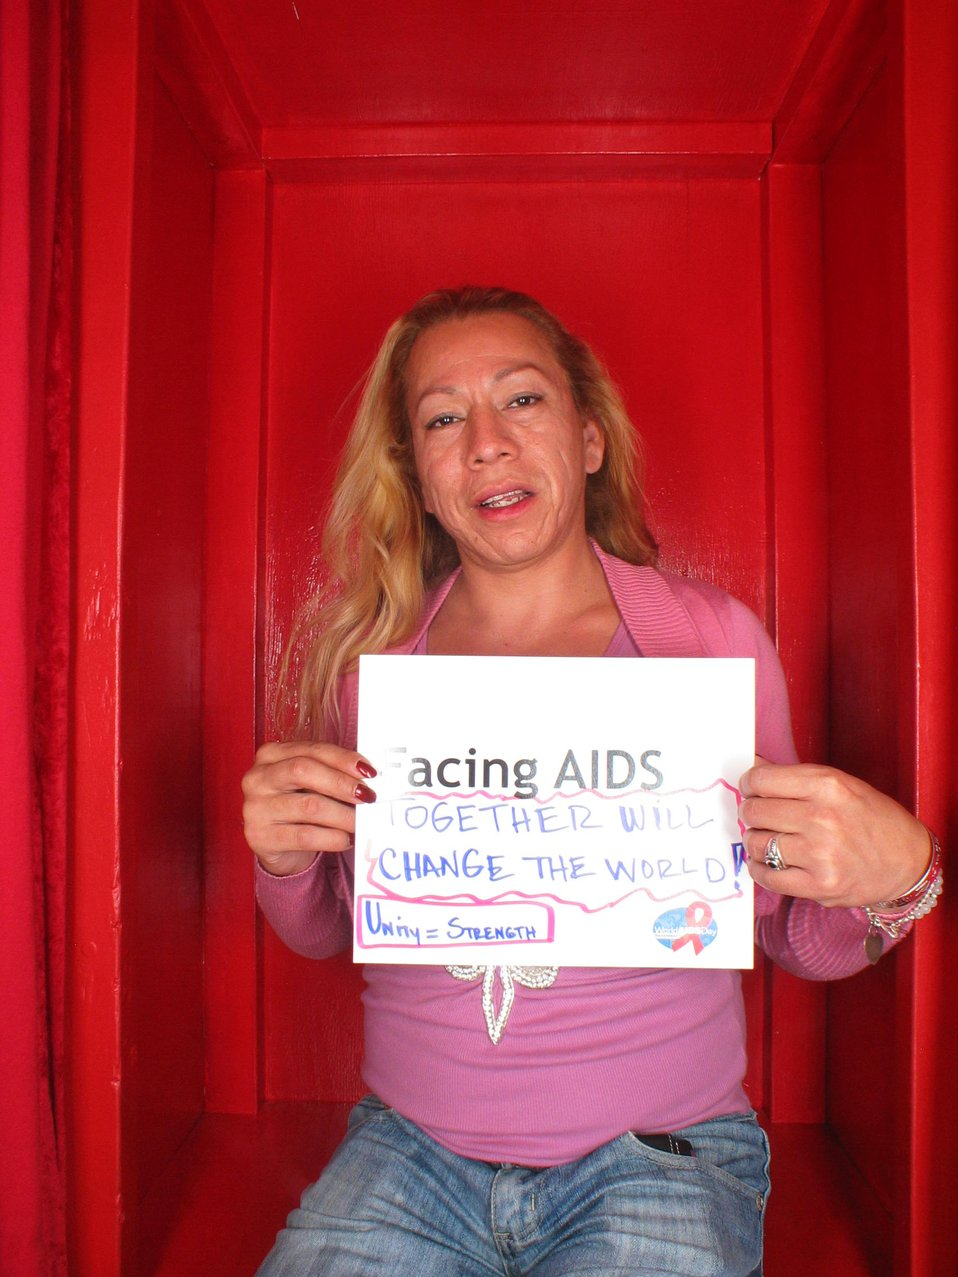 Facing AIDS together to change the world.